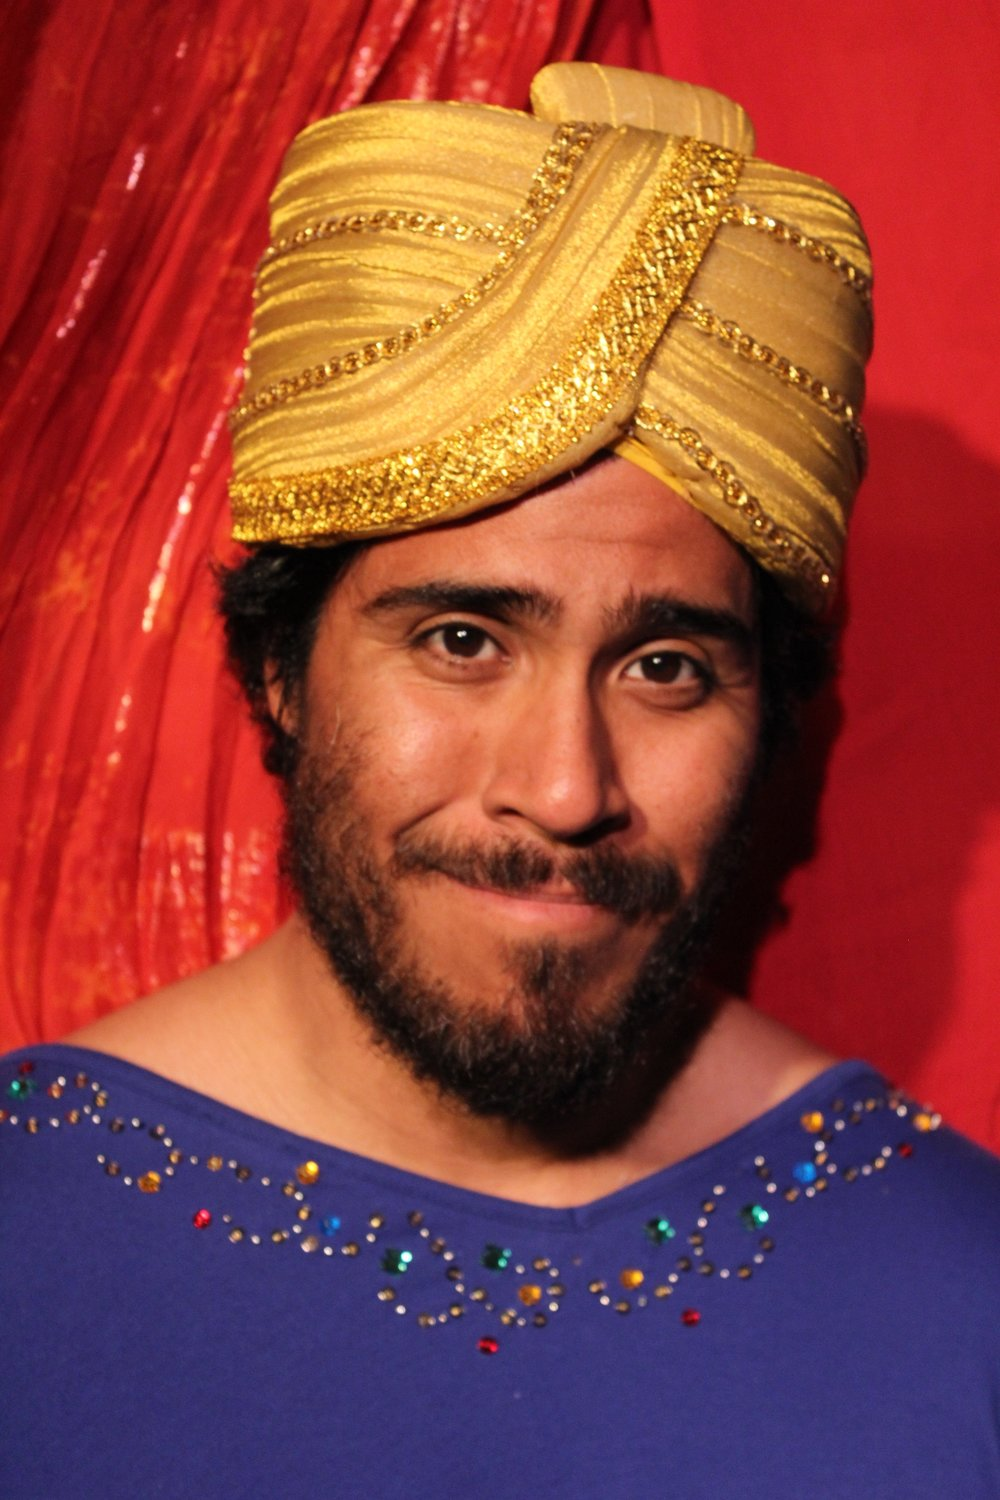 ENOC CASTILLO:  (Ensemble/Storyteller/King) Enoc is a local actor out of Aurora, Colorado.  The Silent Princess is his first professional production on his journey as an actor and he is grateful for the opportunity to tell this story.  He is very excited to be a part of The BiTSY Stage family and hopes that one and all feel the passion and whimsy the theater can offer.